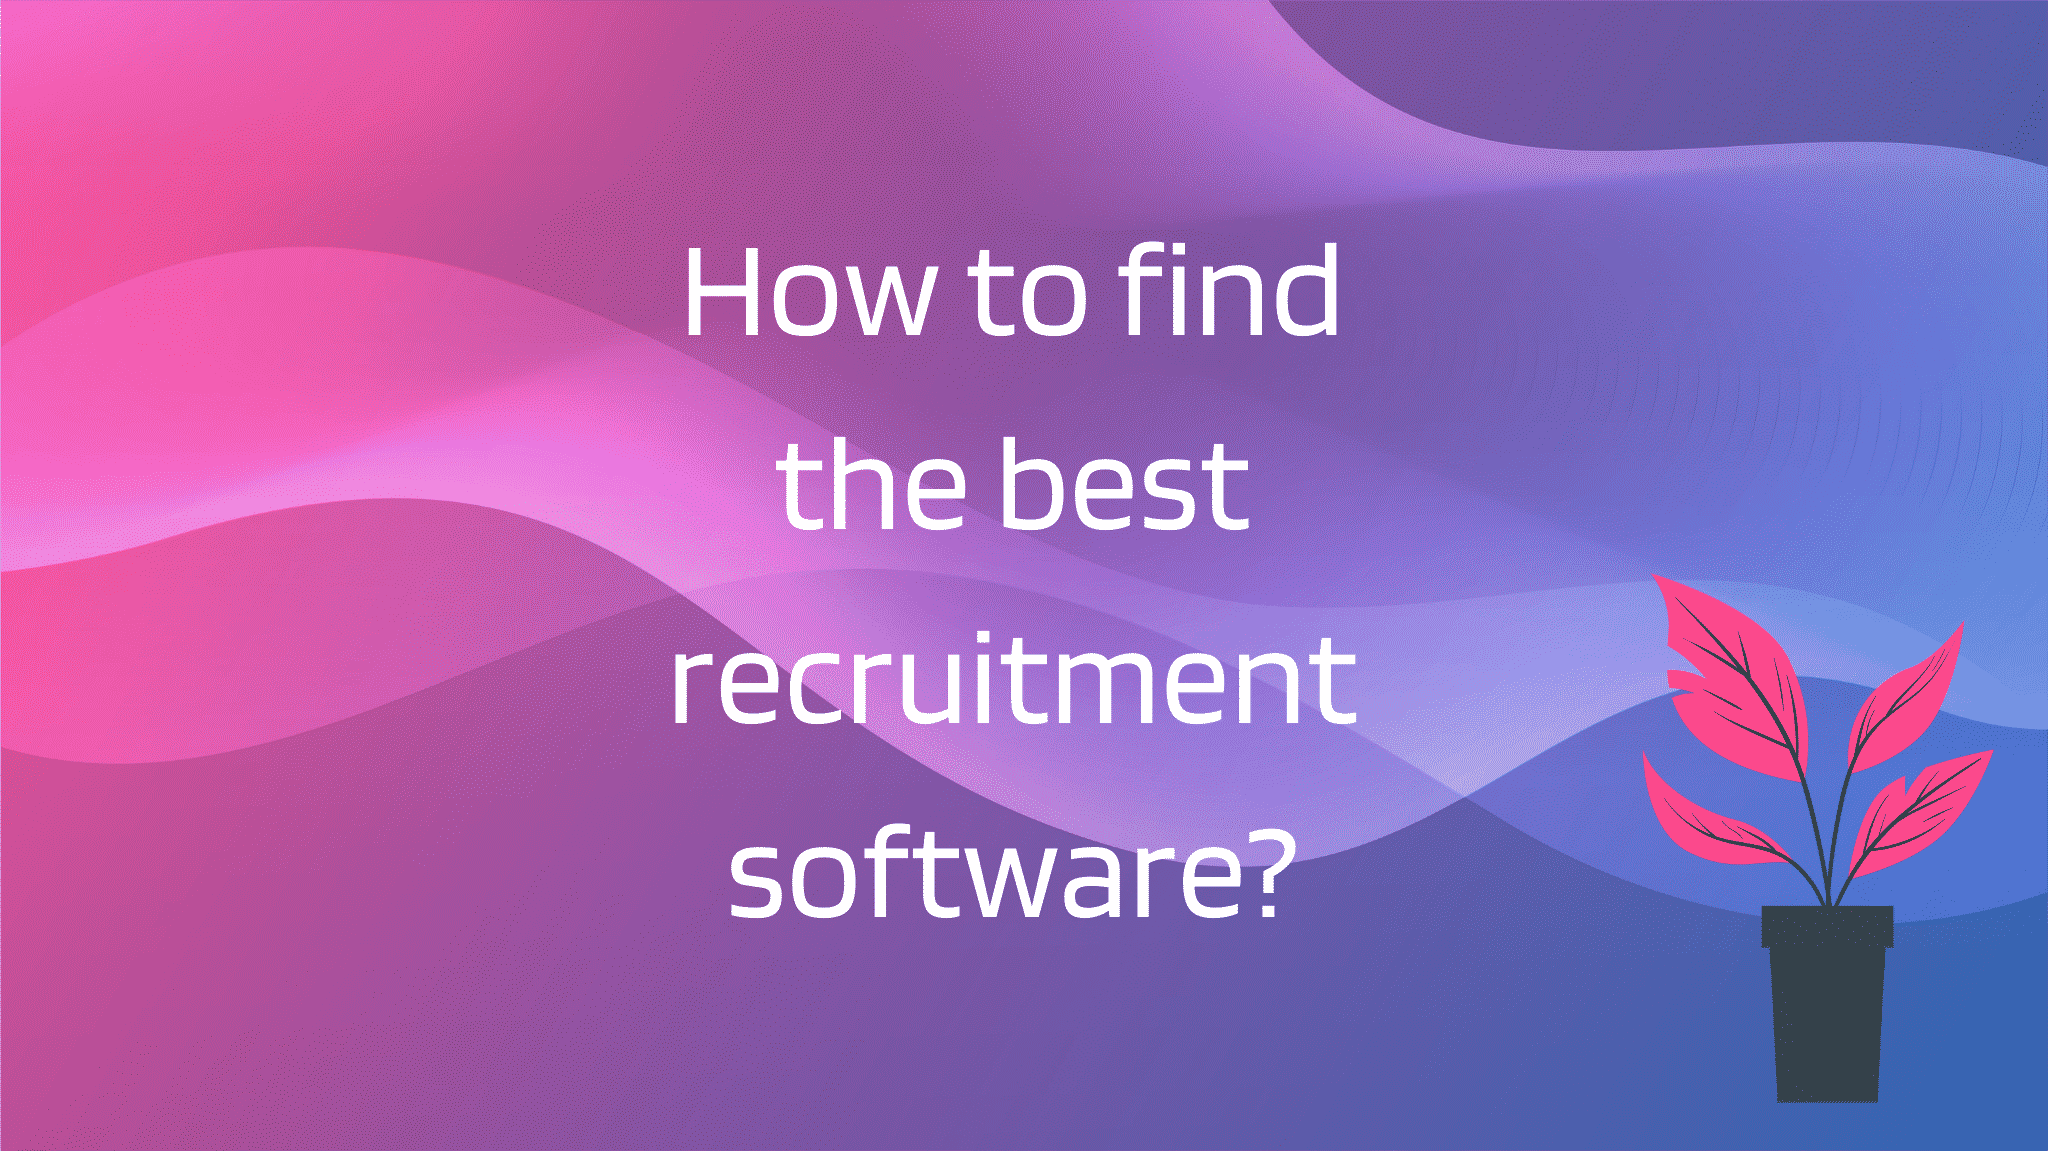 How to find the best recruitment software?